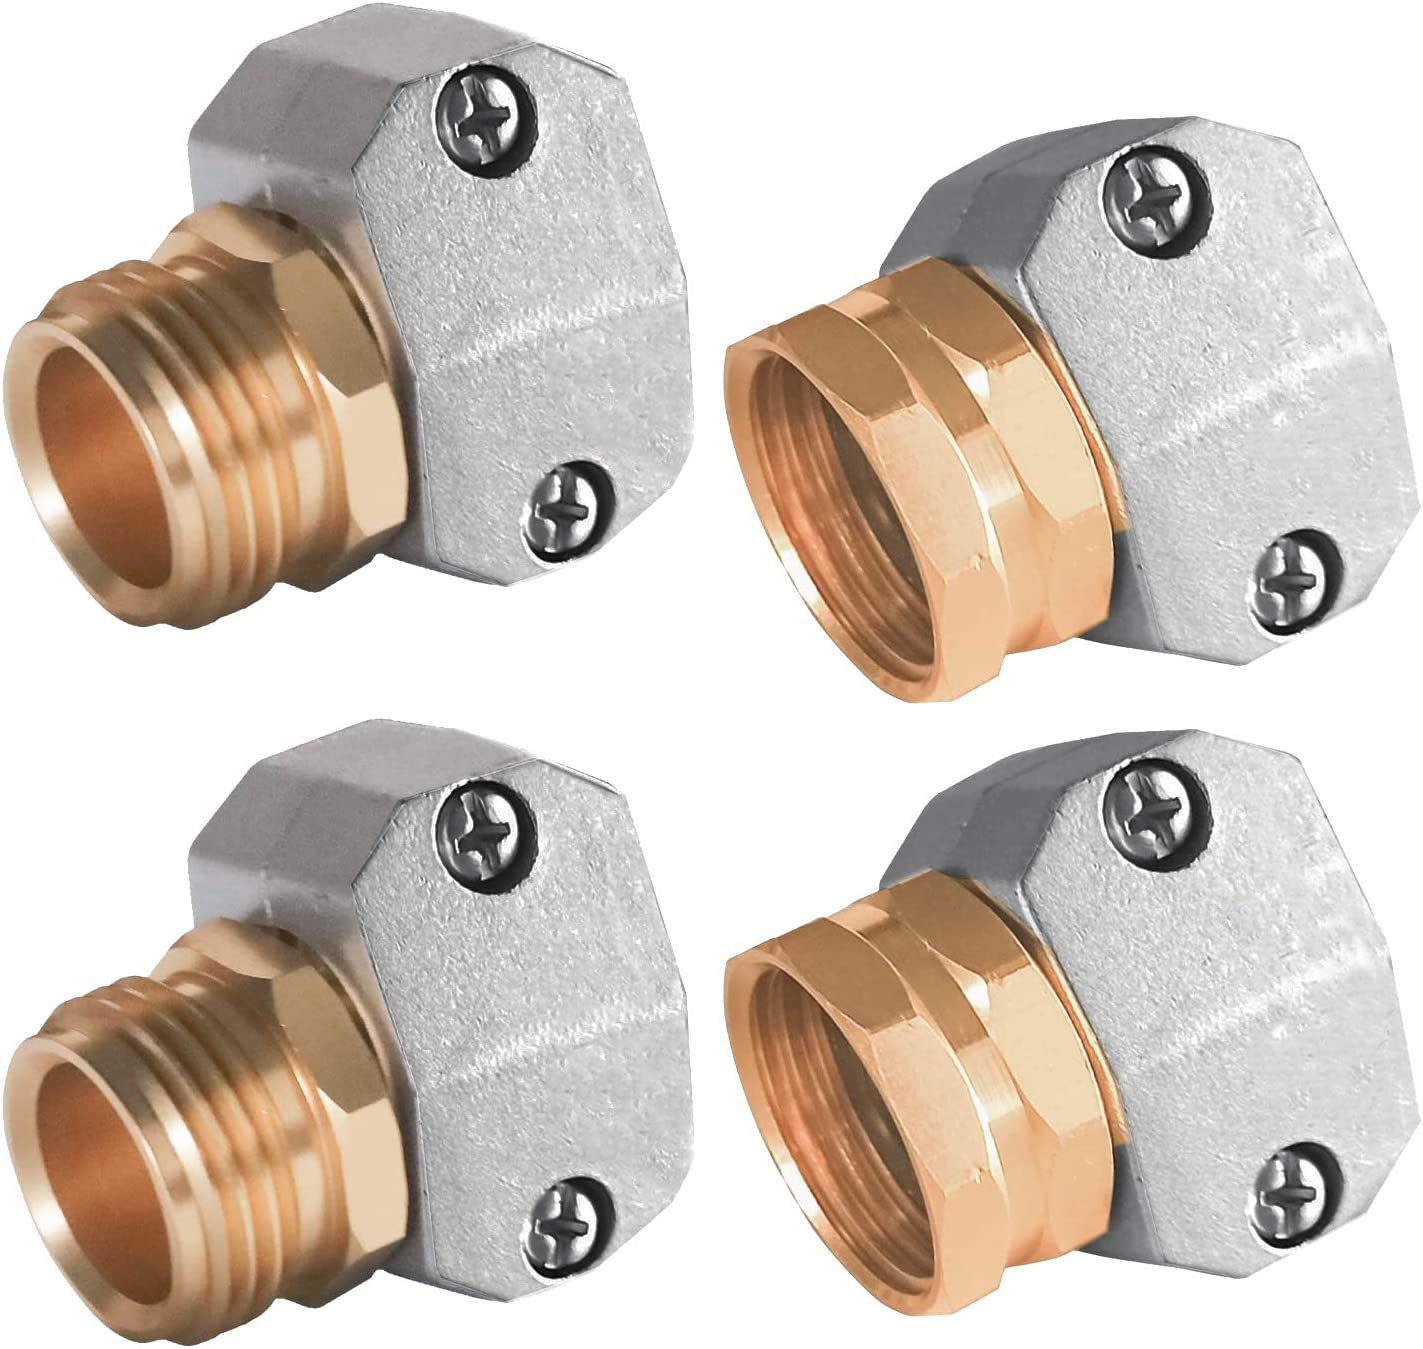 Hourleey Garden Hose Repair Fittings, Zinc and Aluminum Male and Female Hose End Water Hose Repair Connector, 4 Pack